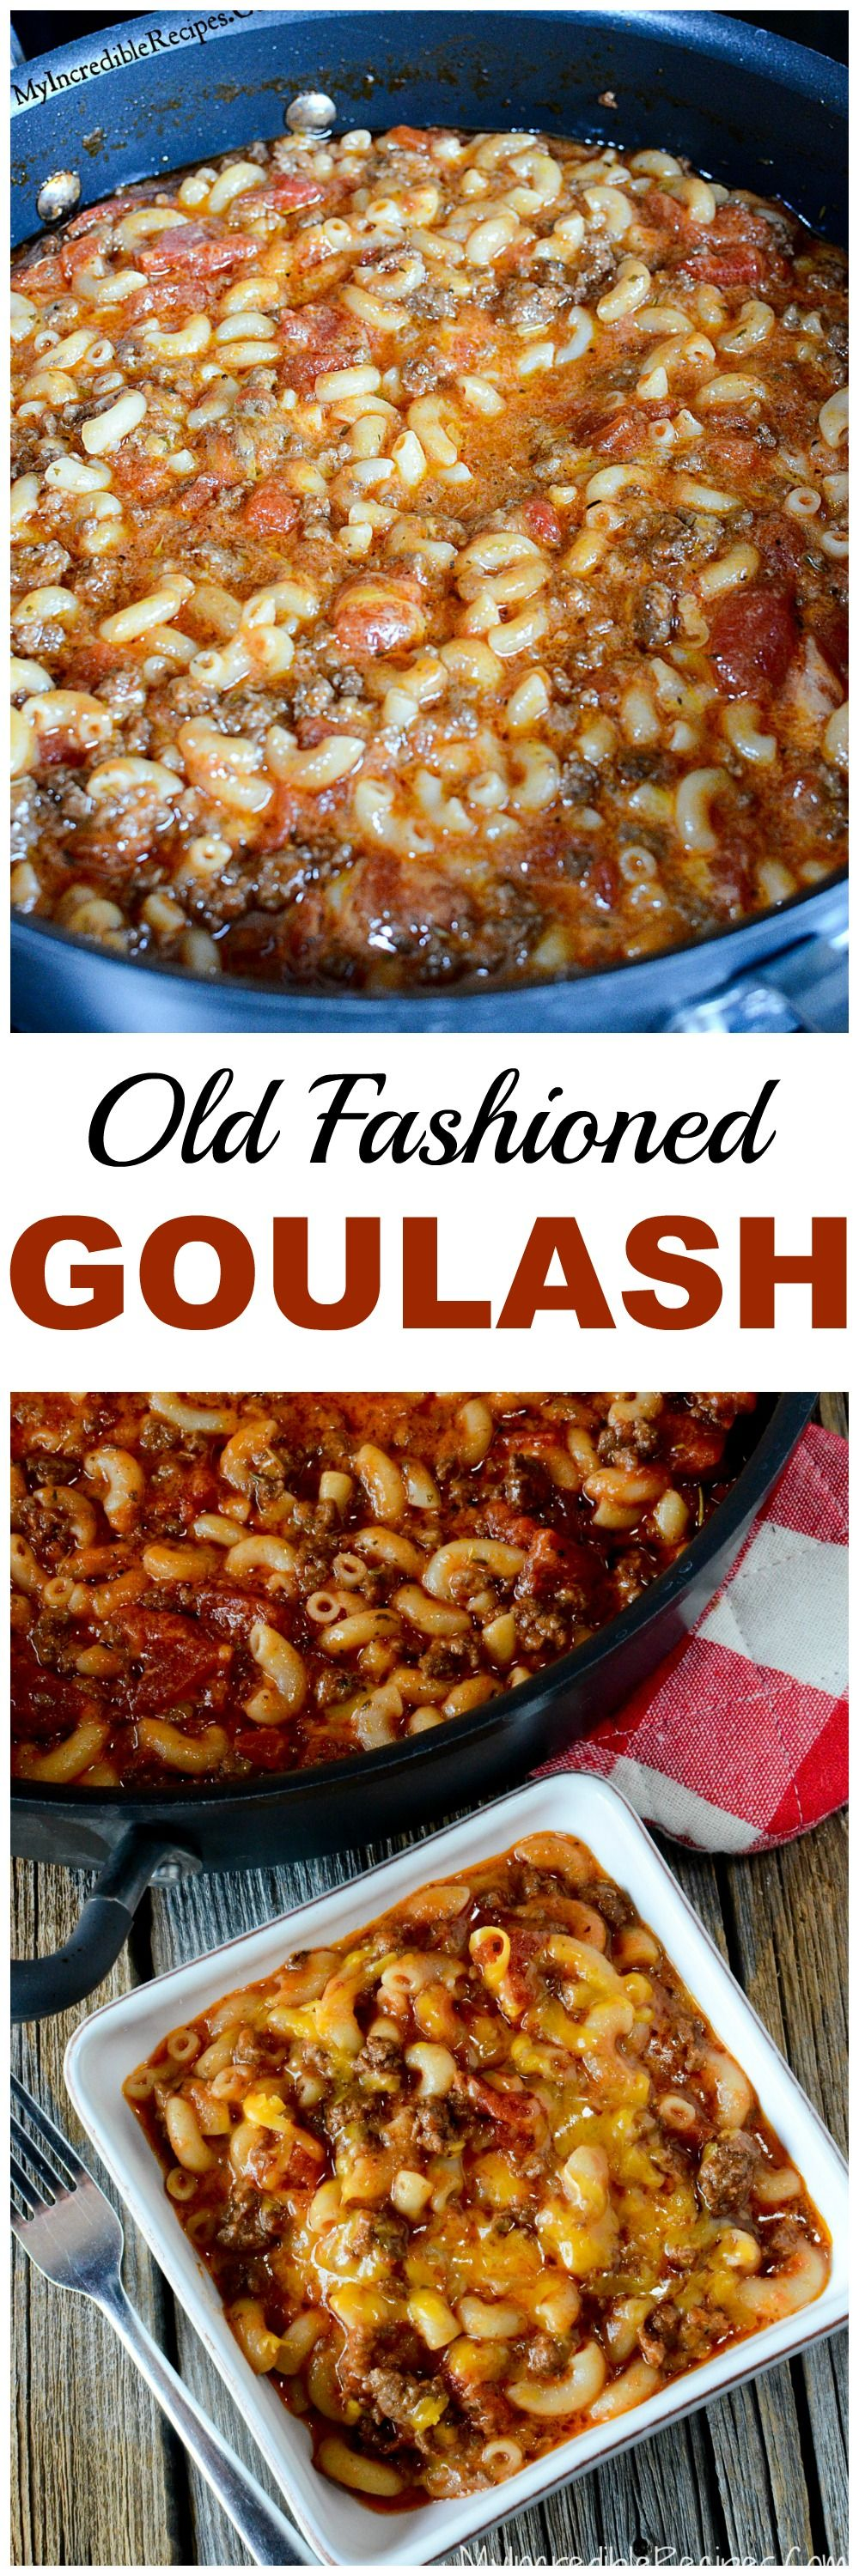 Old Fashioned Goulash Recipe Goulash, Food and Recipes